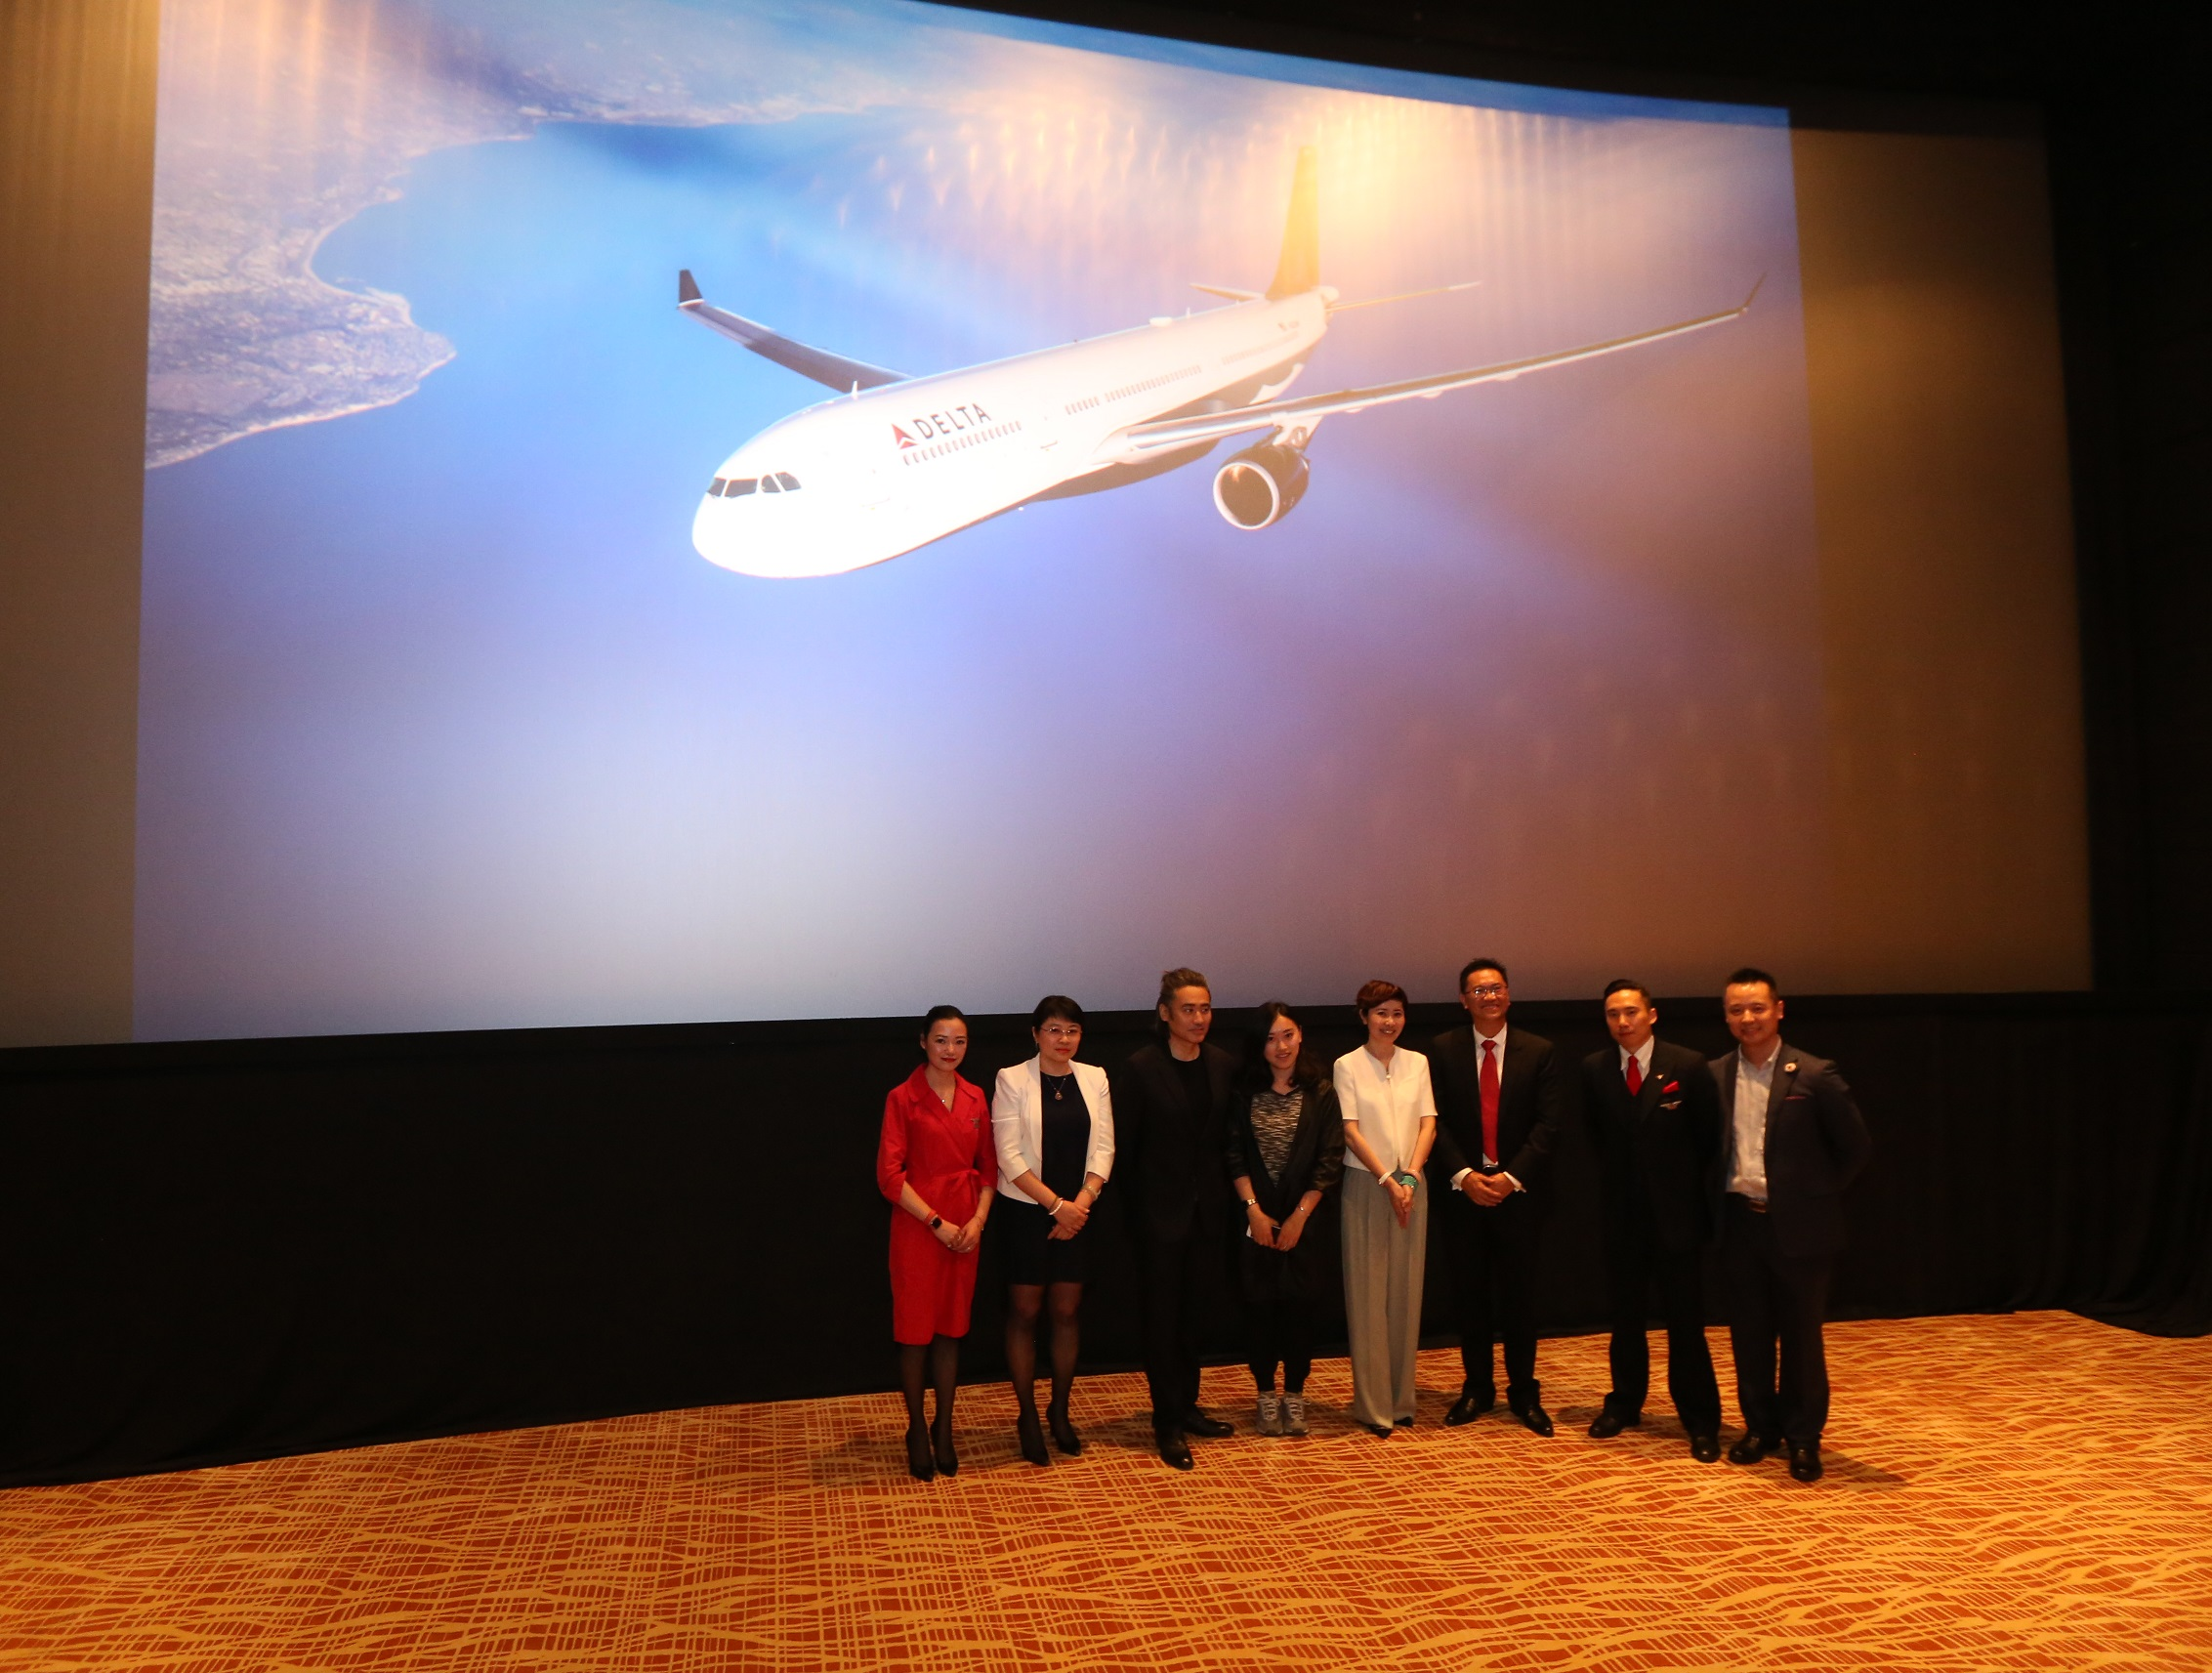 People standing in front of large screen